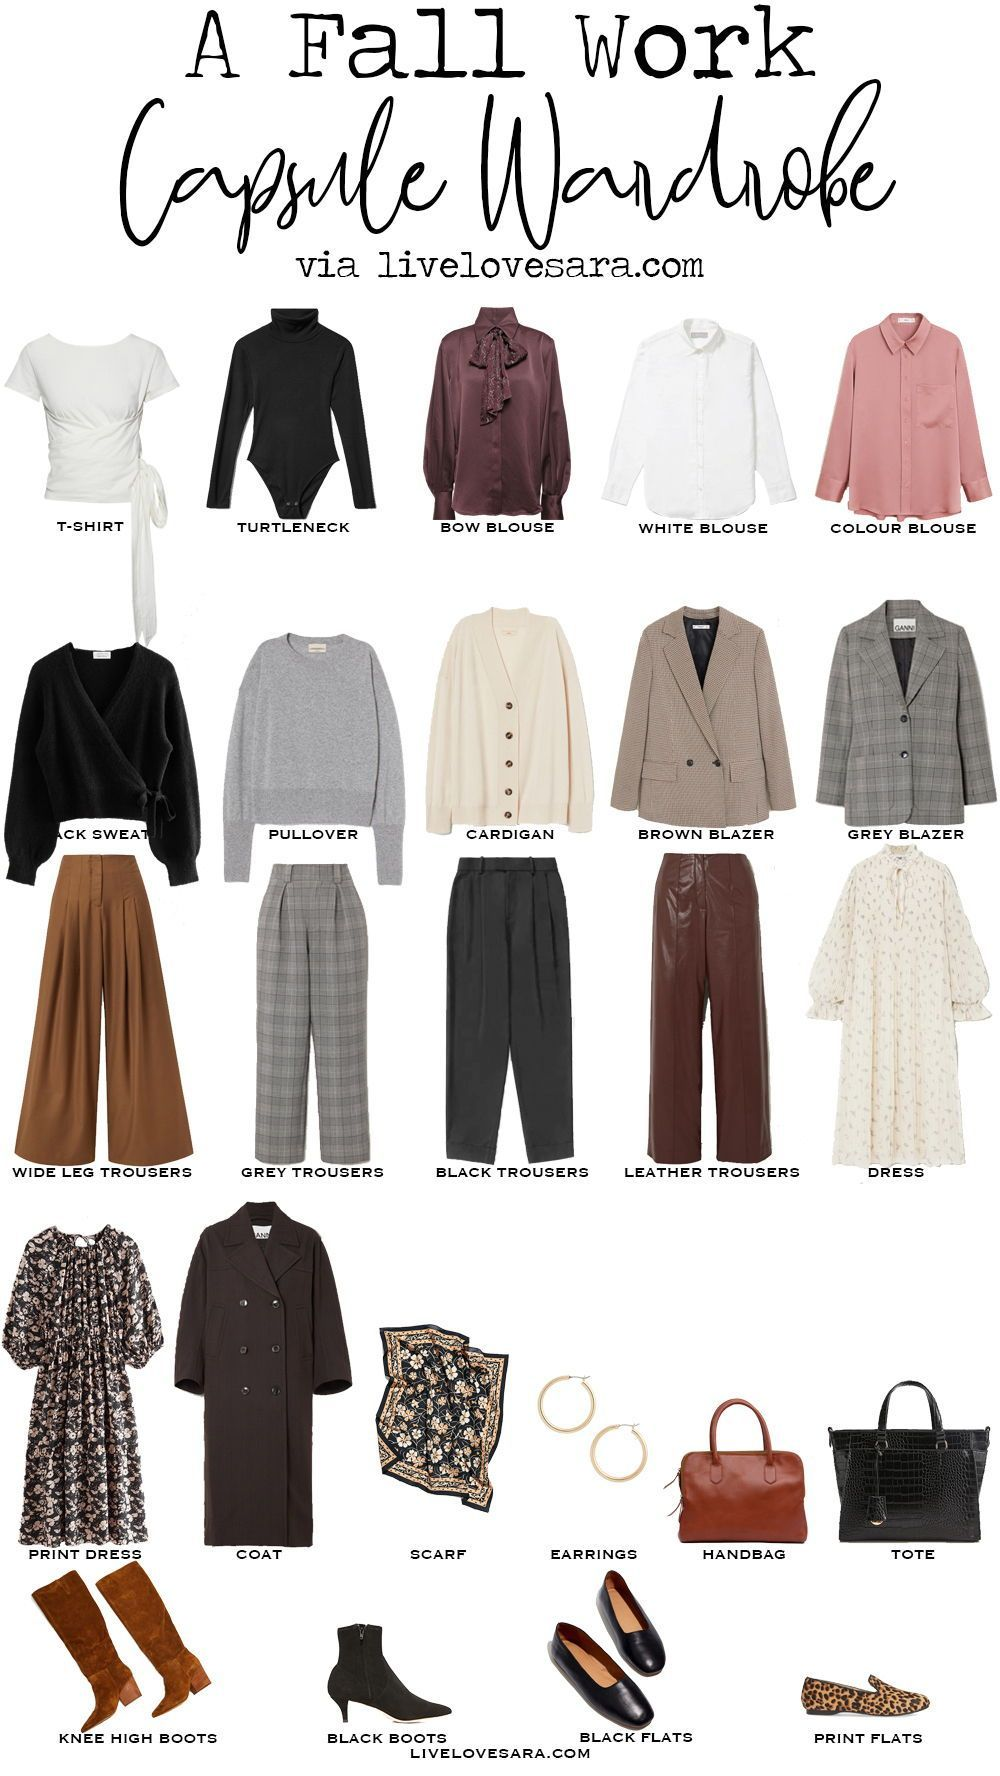 How to Build a Fall Work Capsule Wardrobe   Fall Wardrobe   Fall Essentials   Wardrobe Staples